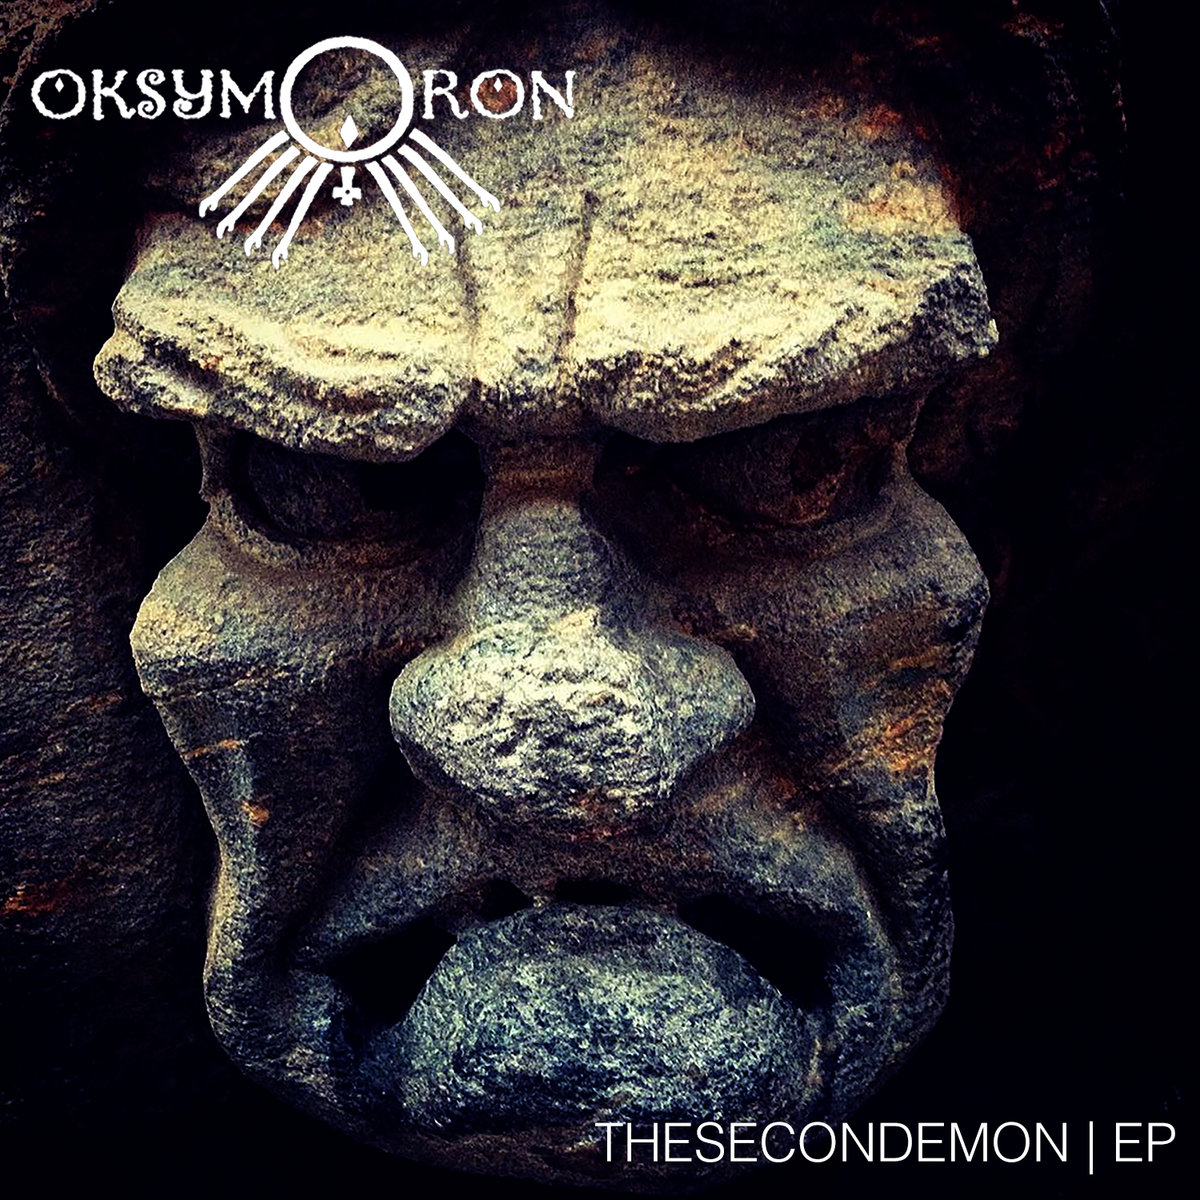 Thesecondemon (EP) by OKSYMORON